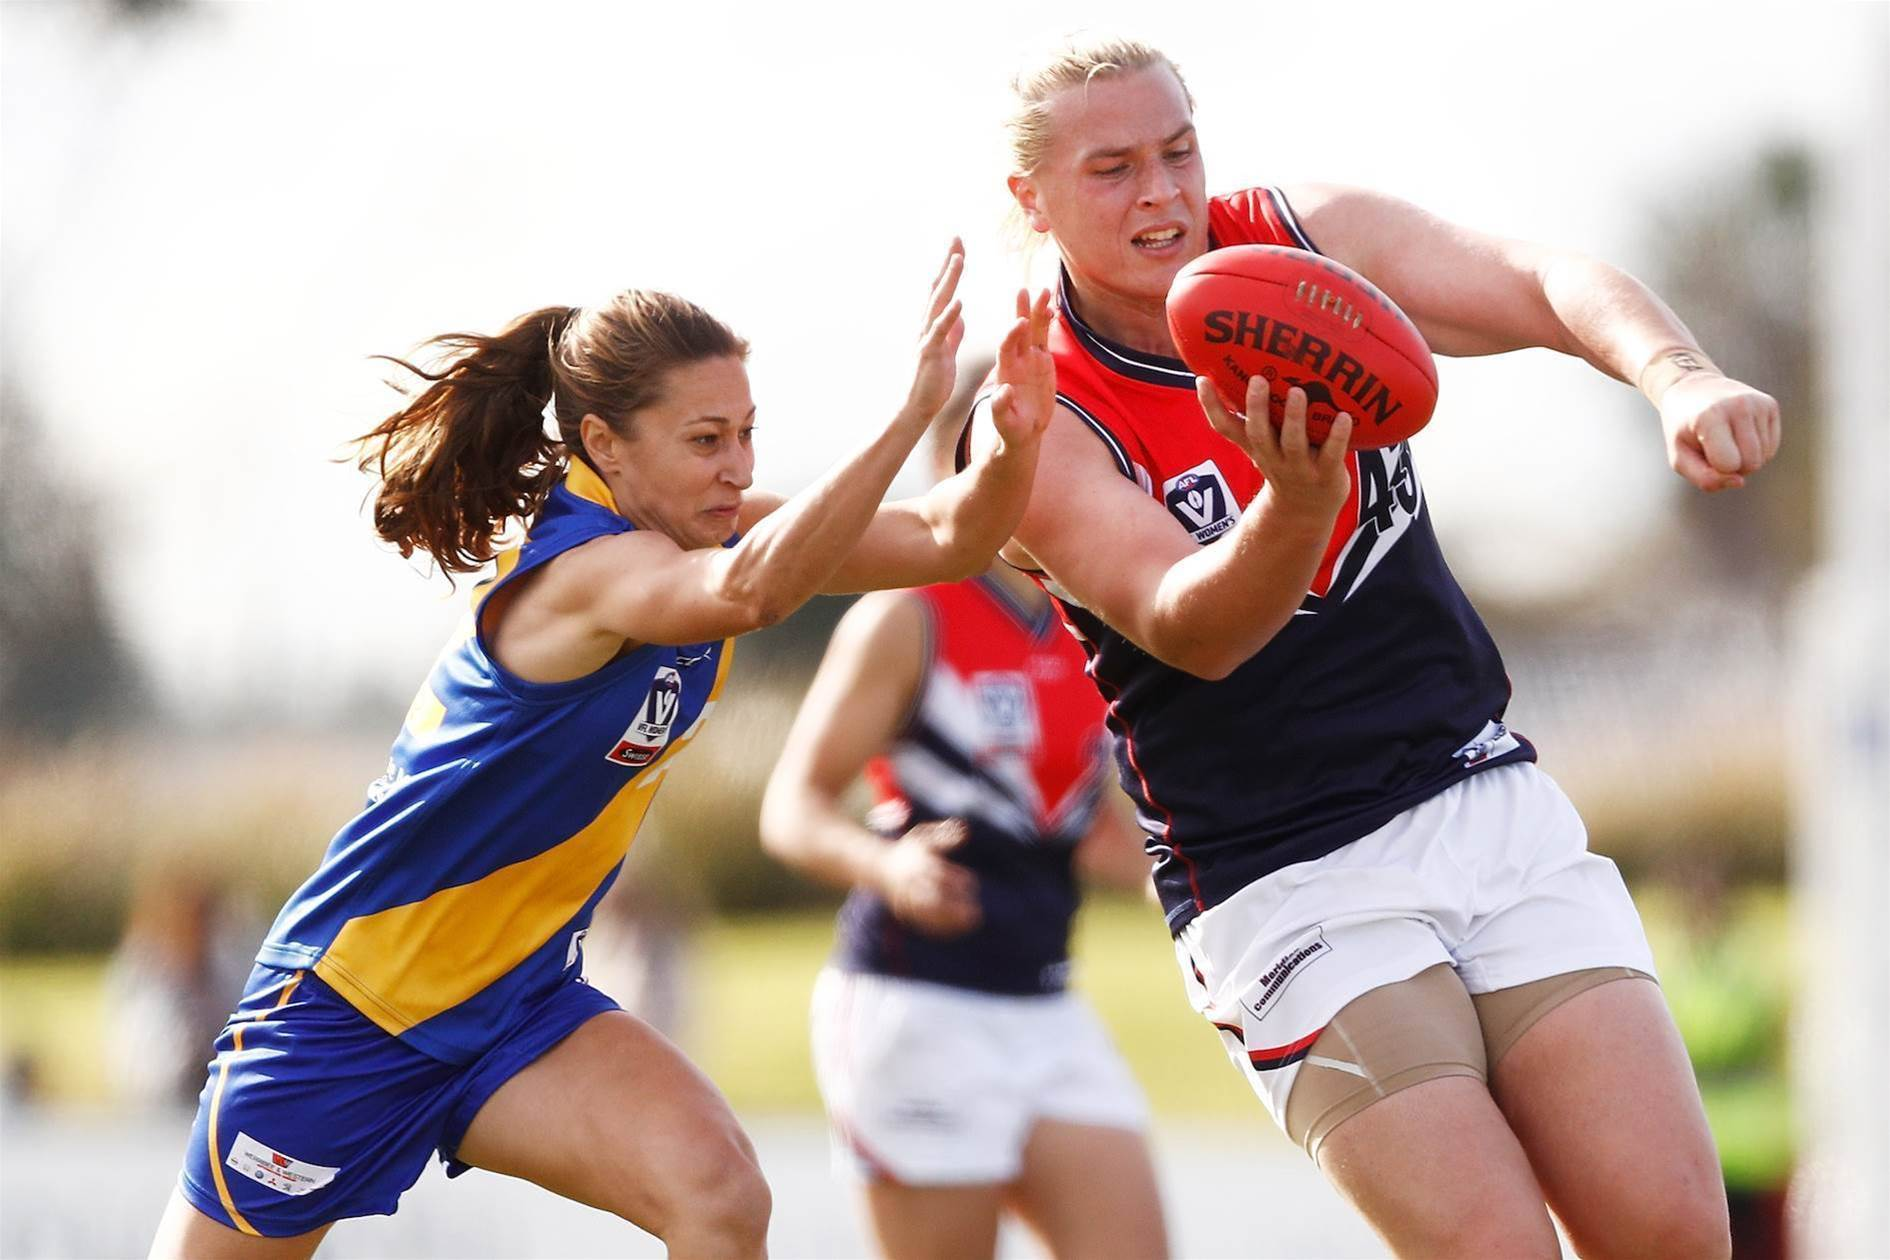 Mouncey withdraws AFLW Draft application